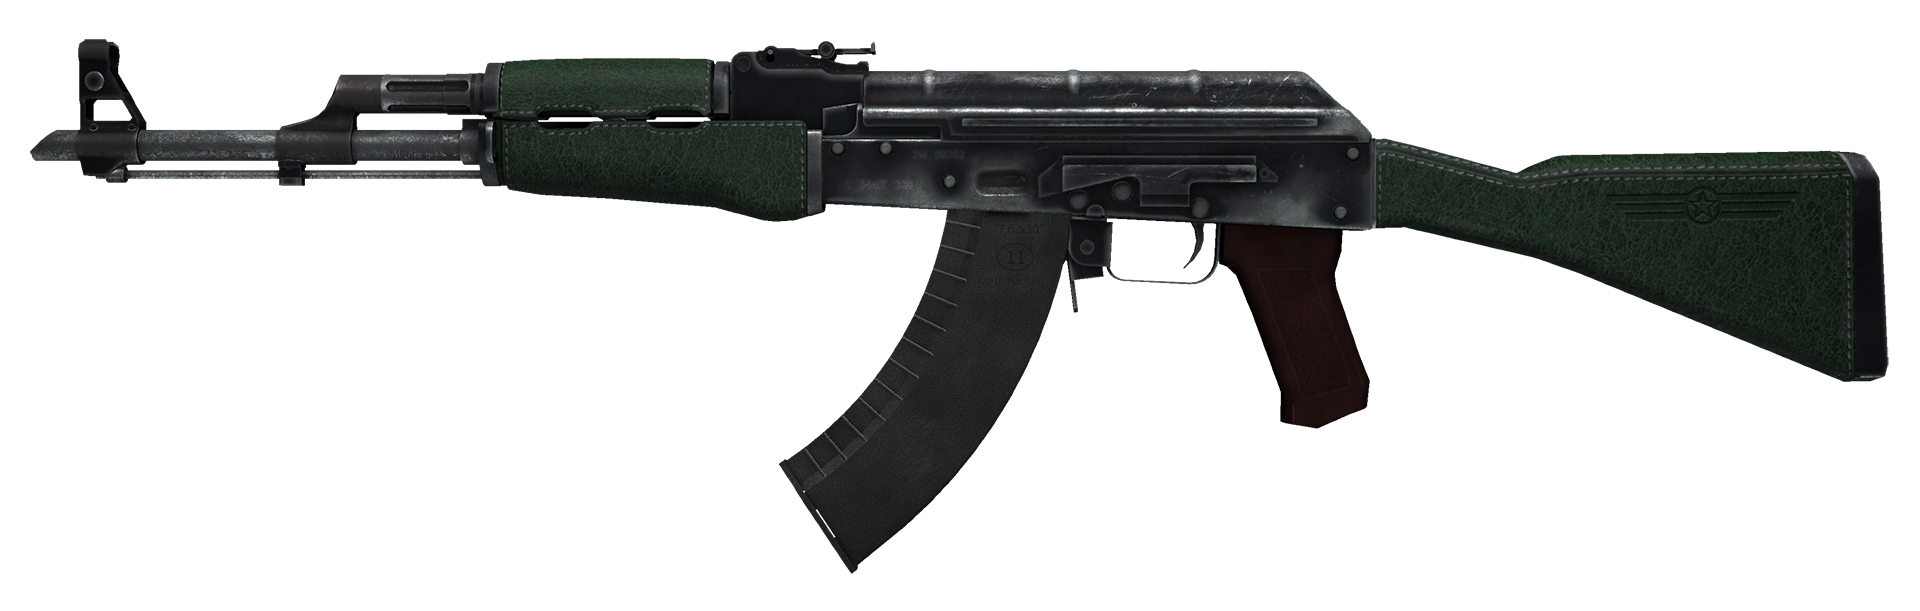 AK-47 First Class Large Rendering